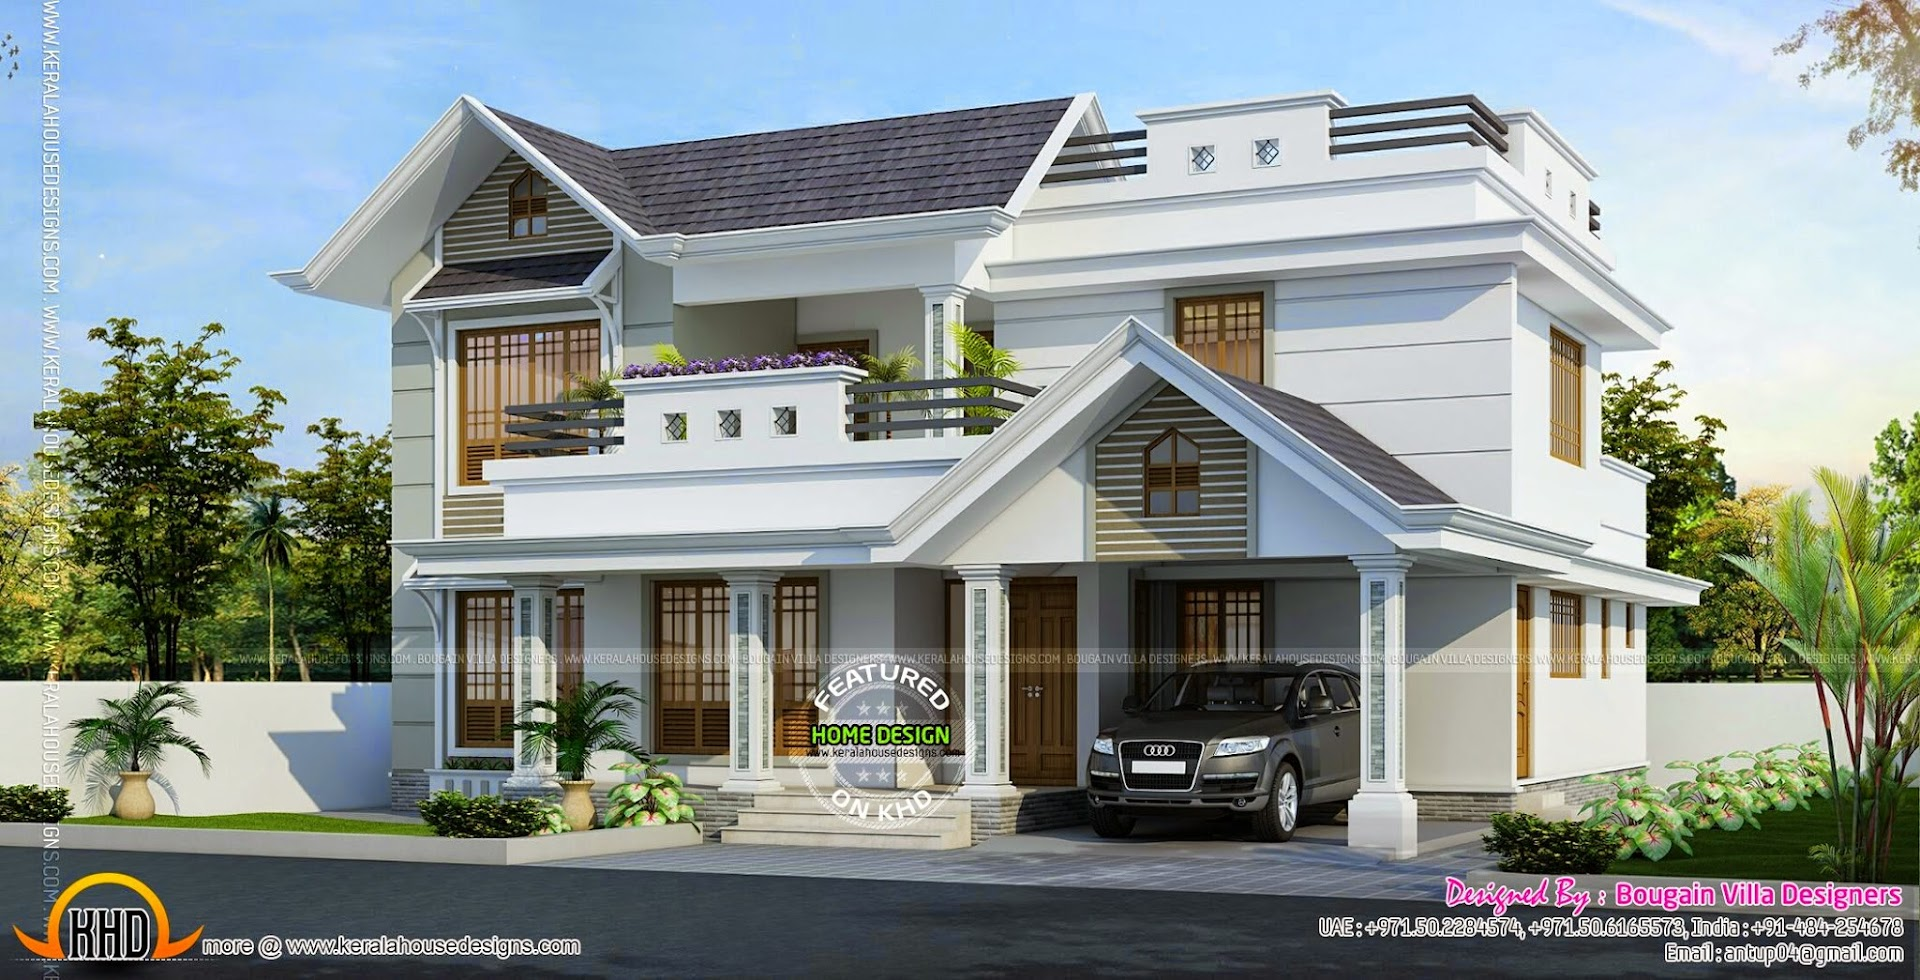 Beautiful house design in kollam keralahousedesigns for Classic house styles